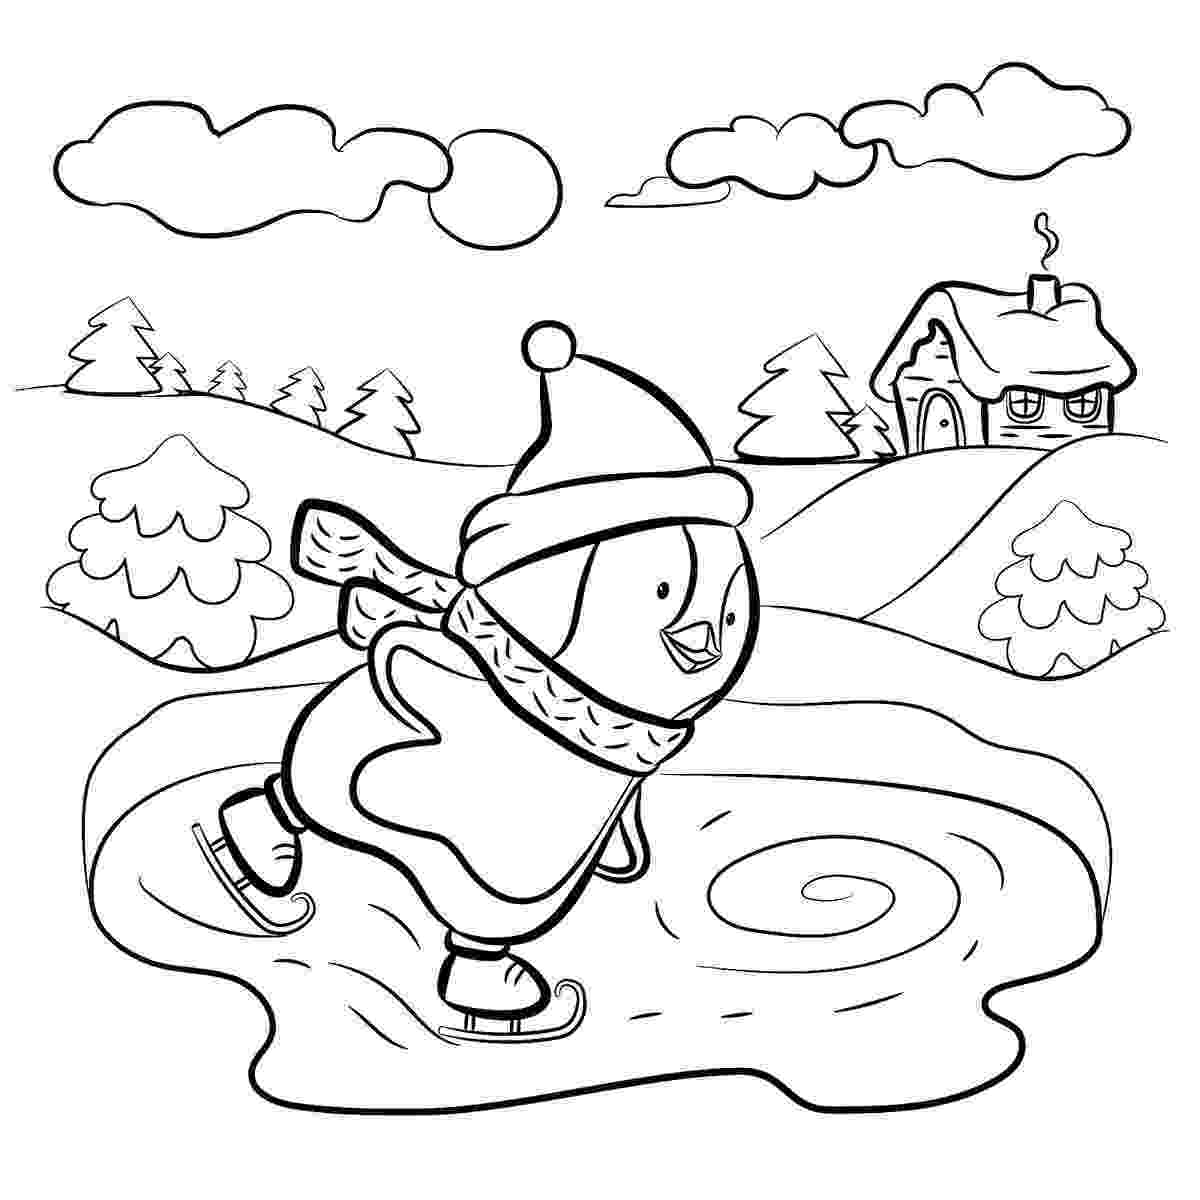 winter color sheets free printable winter coloring pages sheets color winter